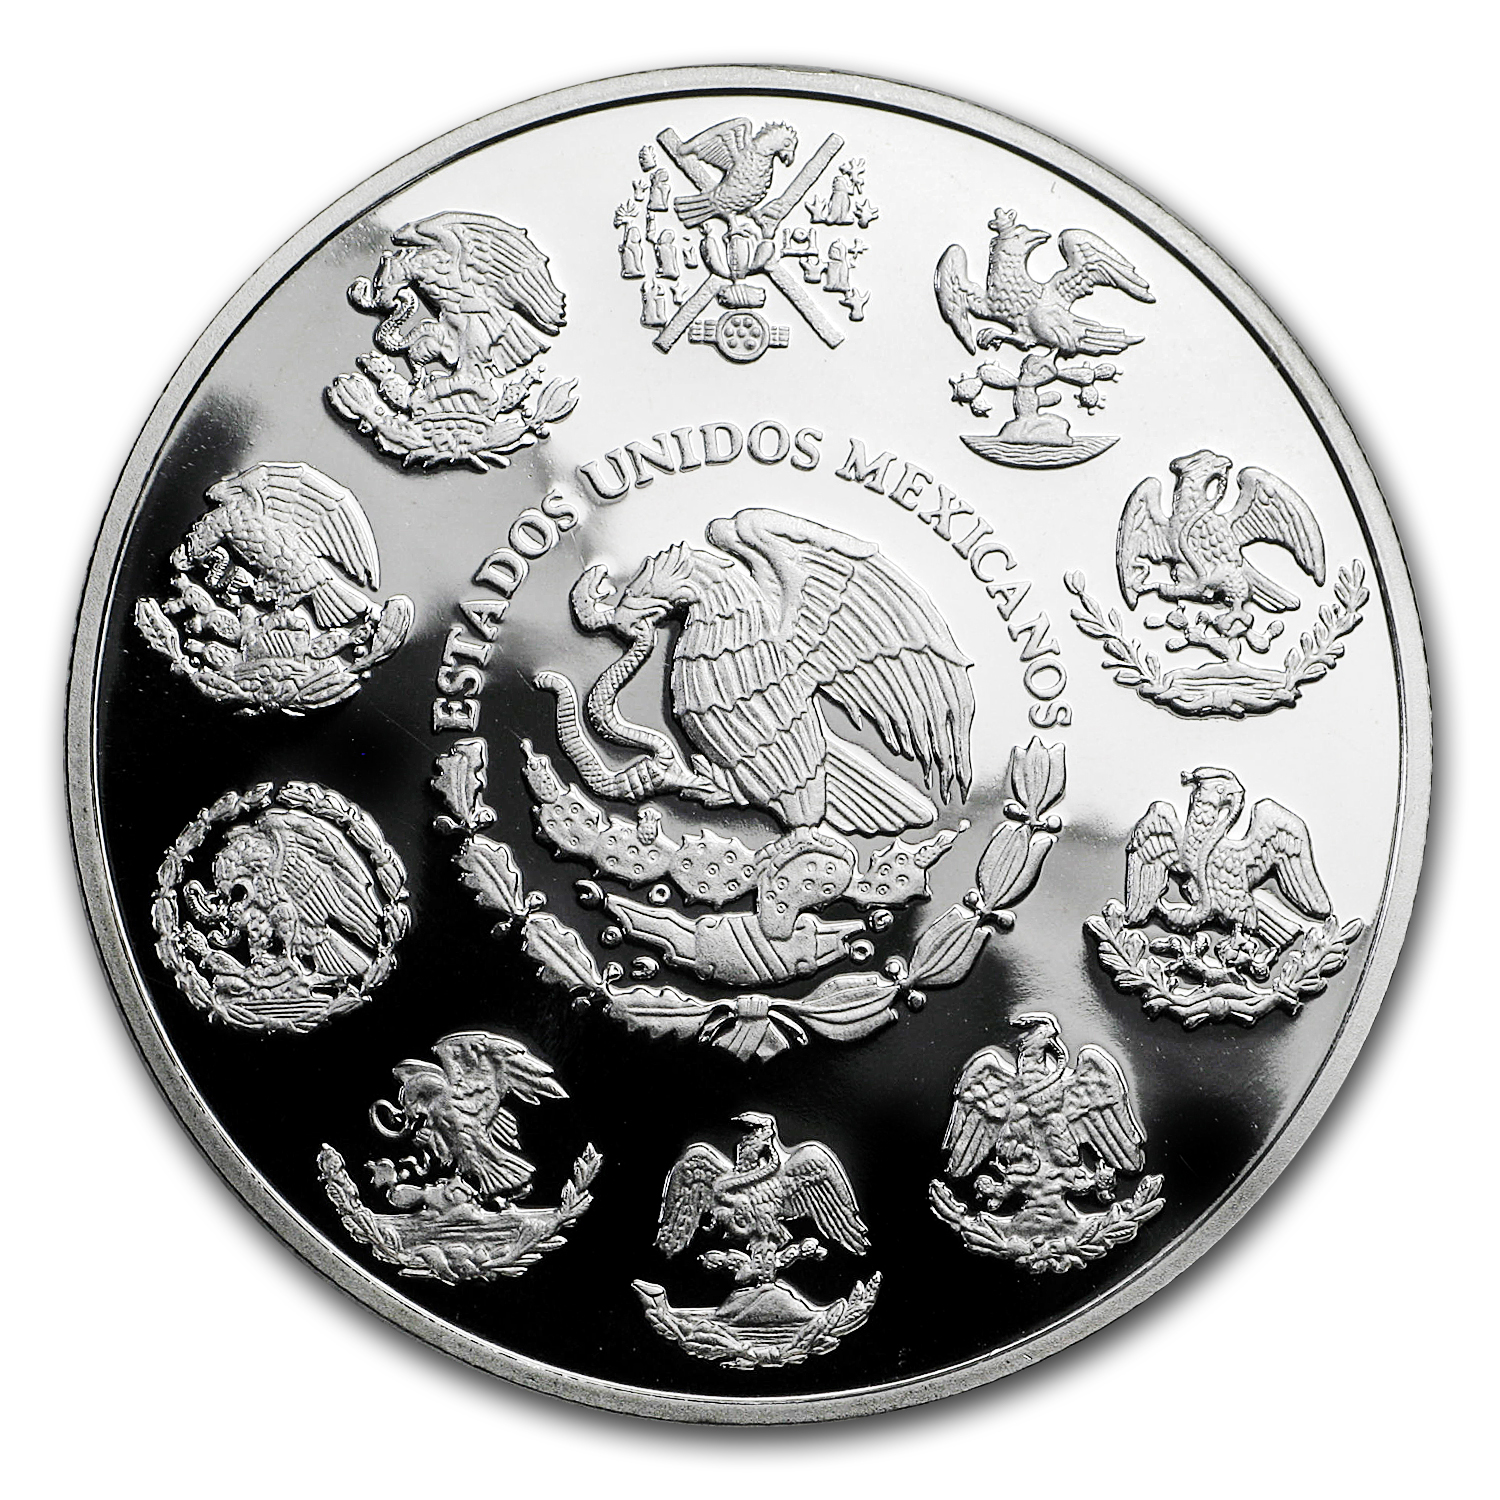 2009 1 oz Silver Mexican Libertad - Proof (In Capsule)